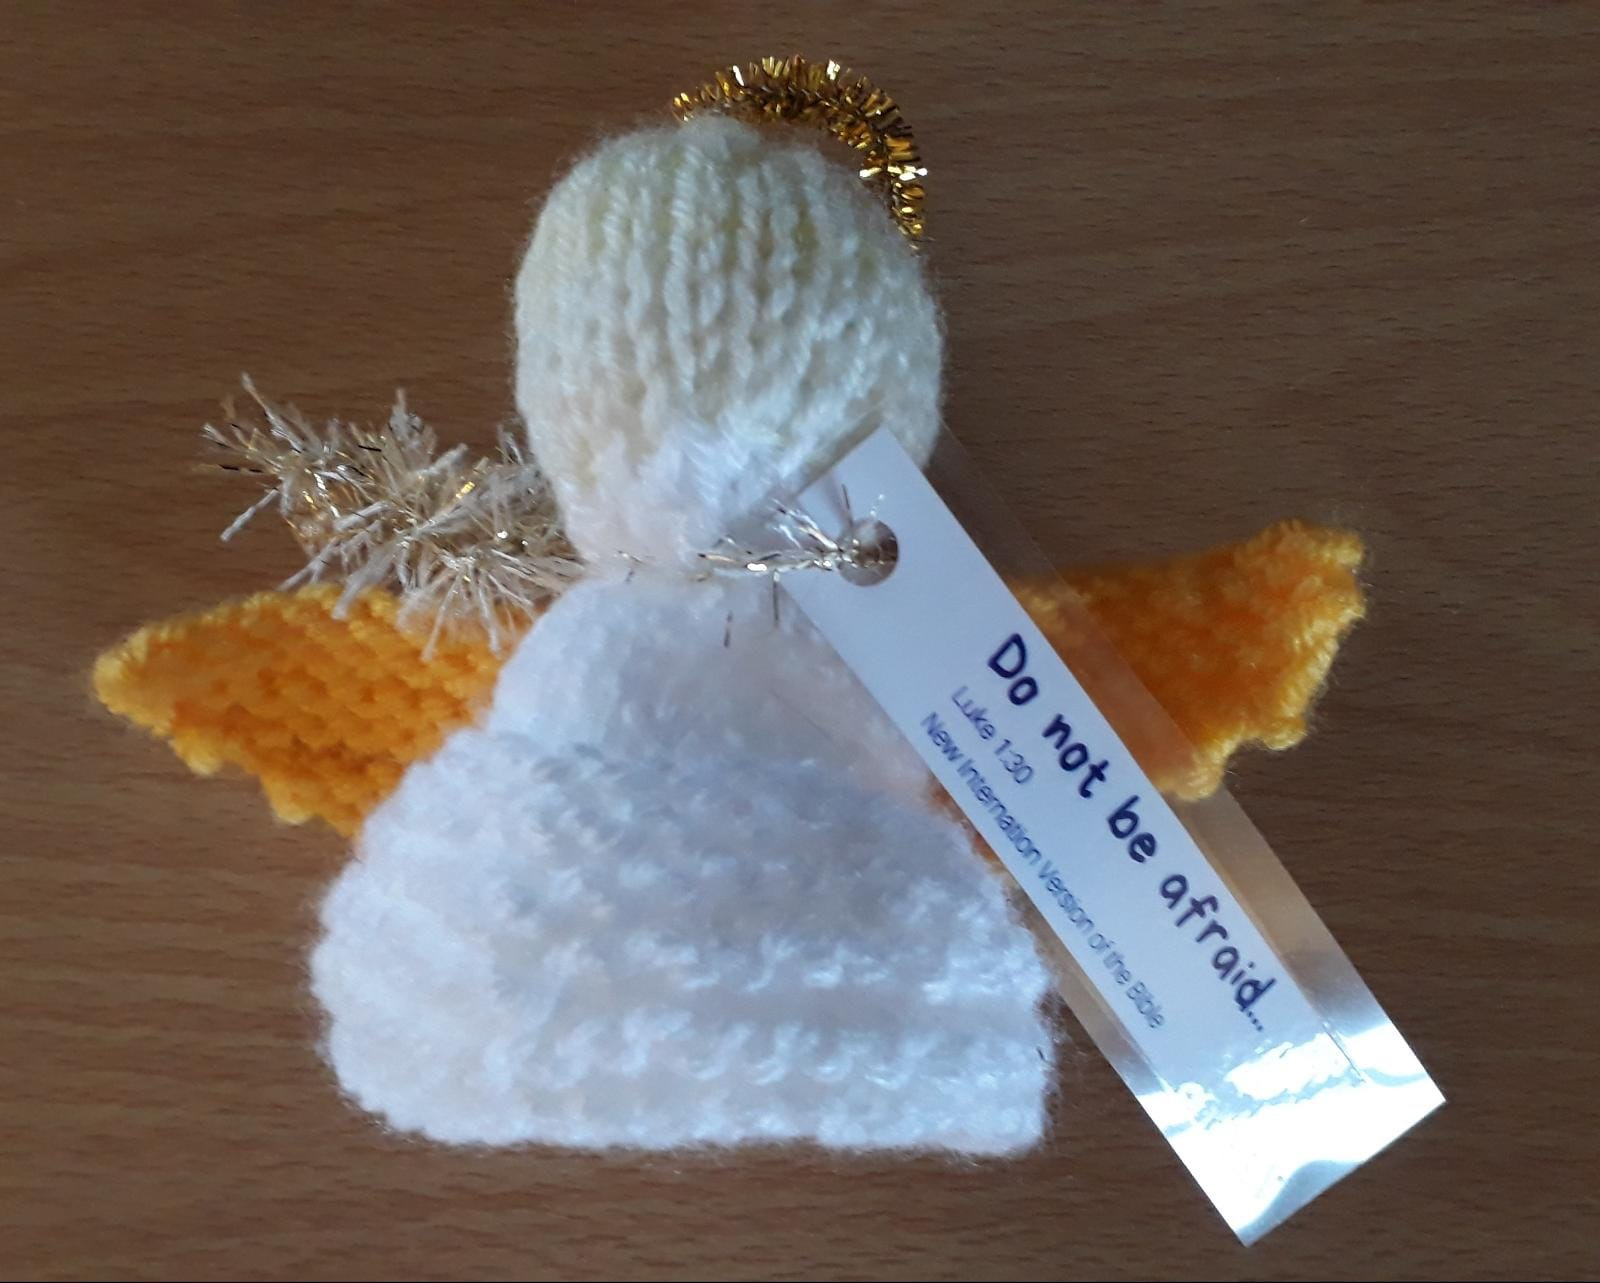 One of the knitted angels